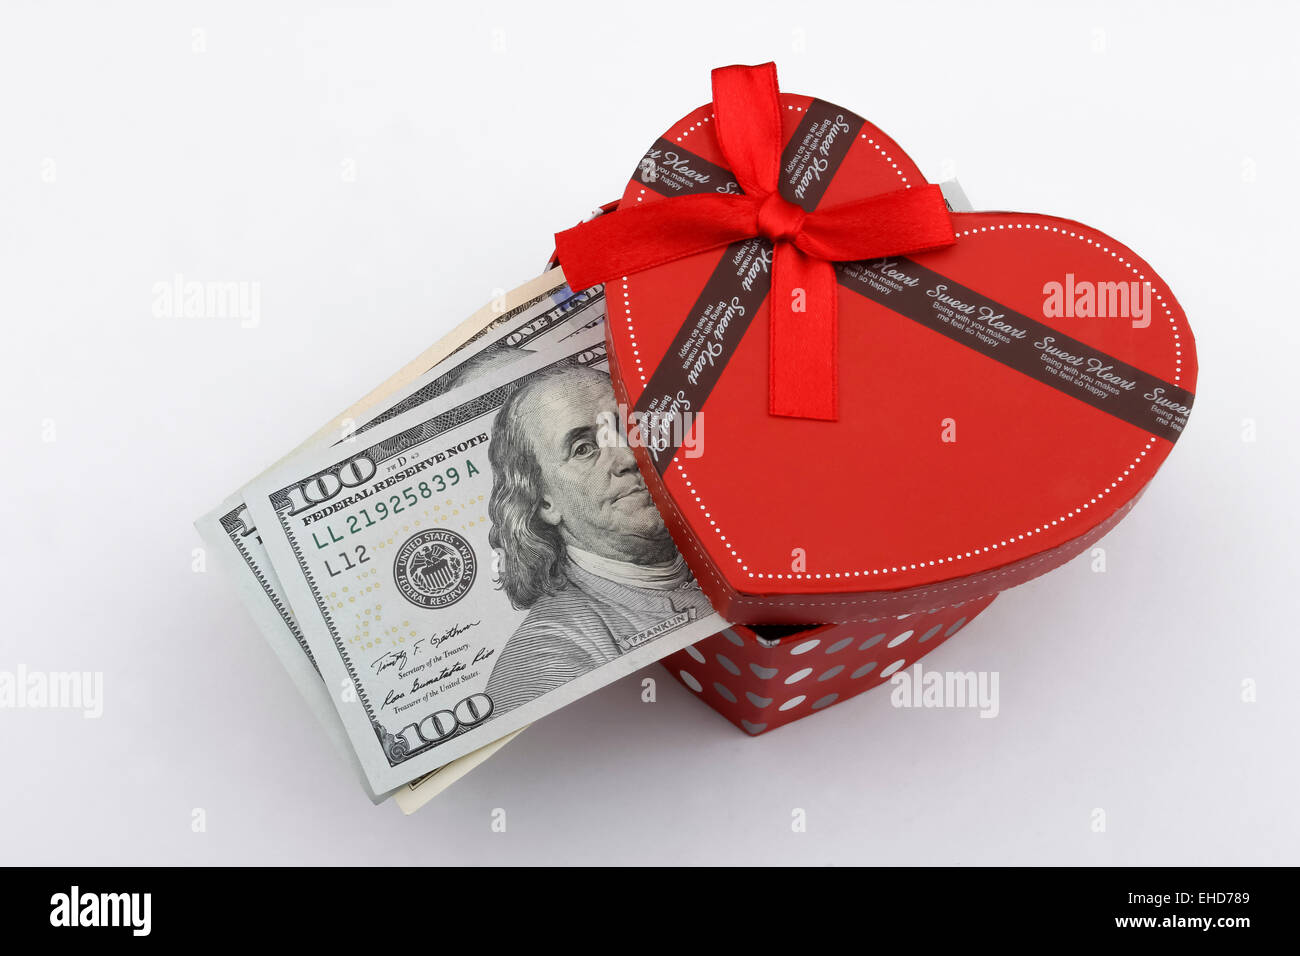 Love gift with US dollar bills (USD), in a red gift box. - Stock Image